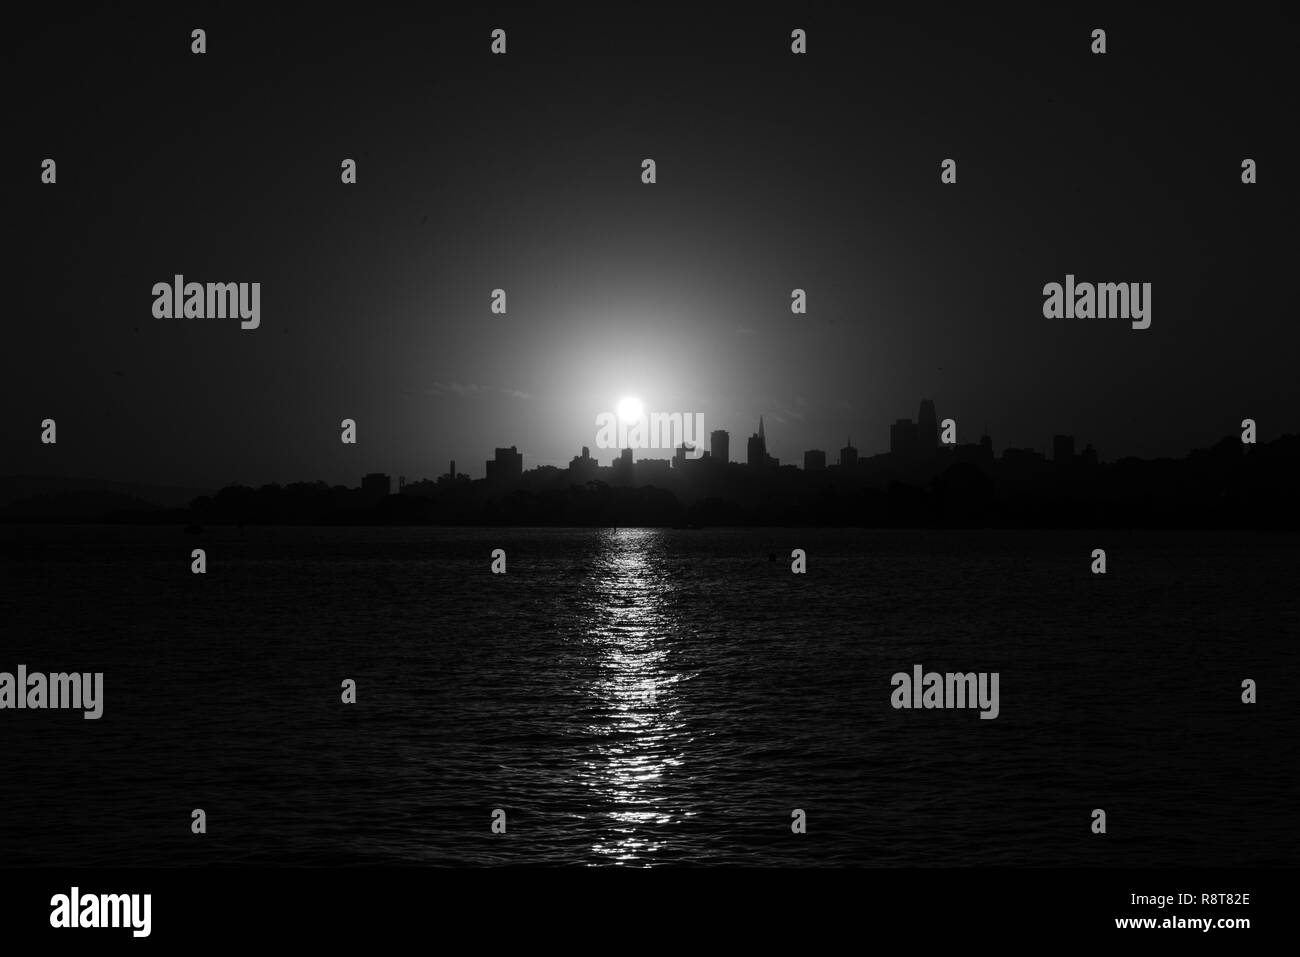 Black and white photograph of the sunrise over downtown San Francisco - Stock Image